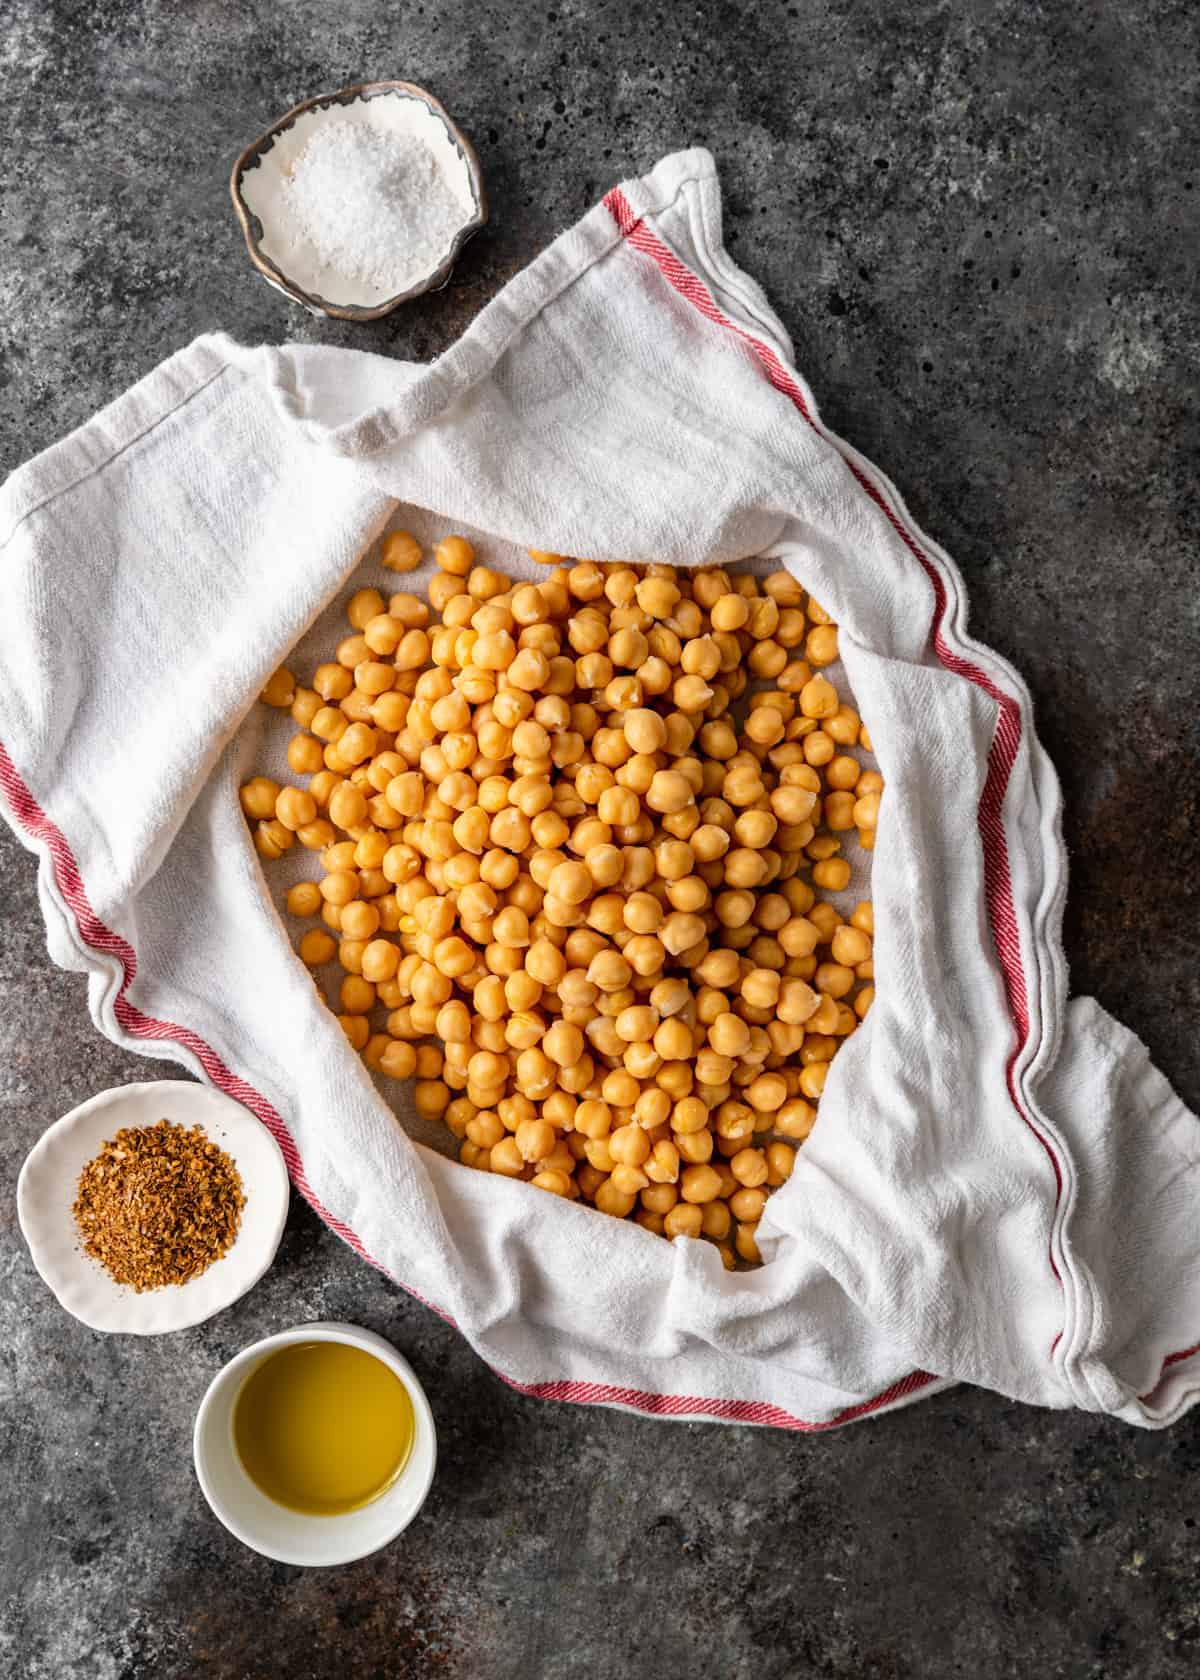 overhead image of ingredients for turkish roasted chickpeas: chickpeas, olive oil, sugar, and a spice blend.